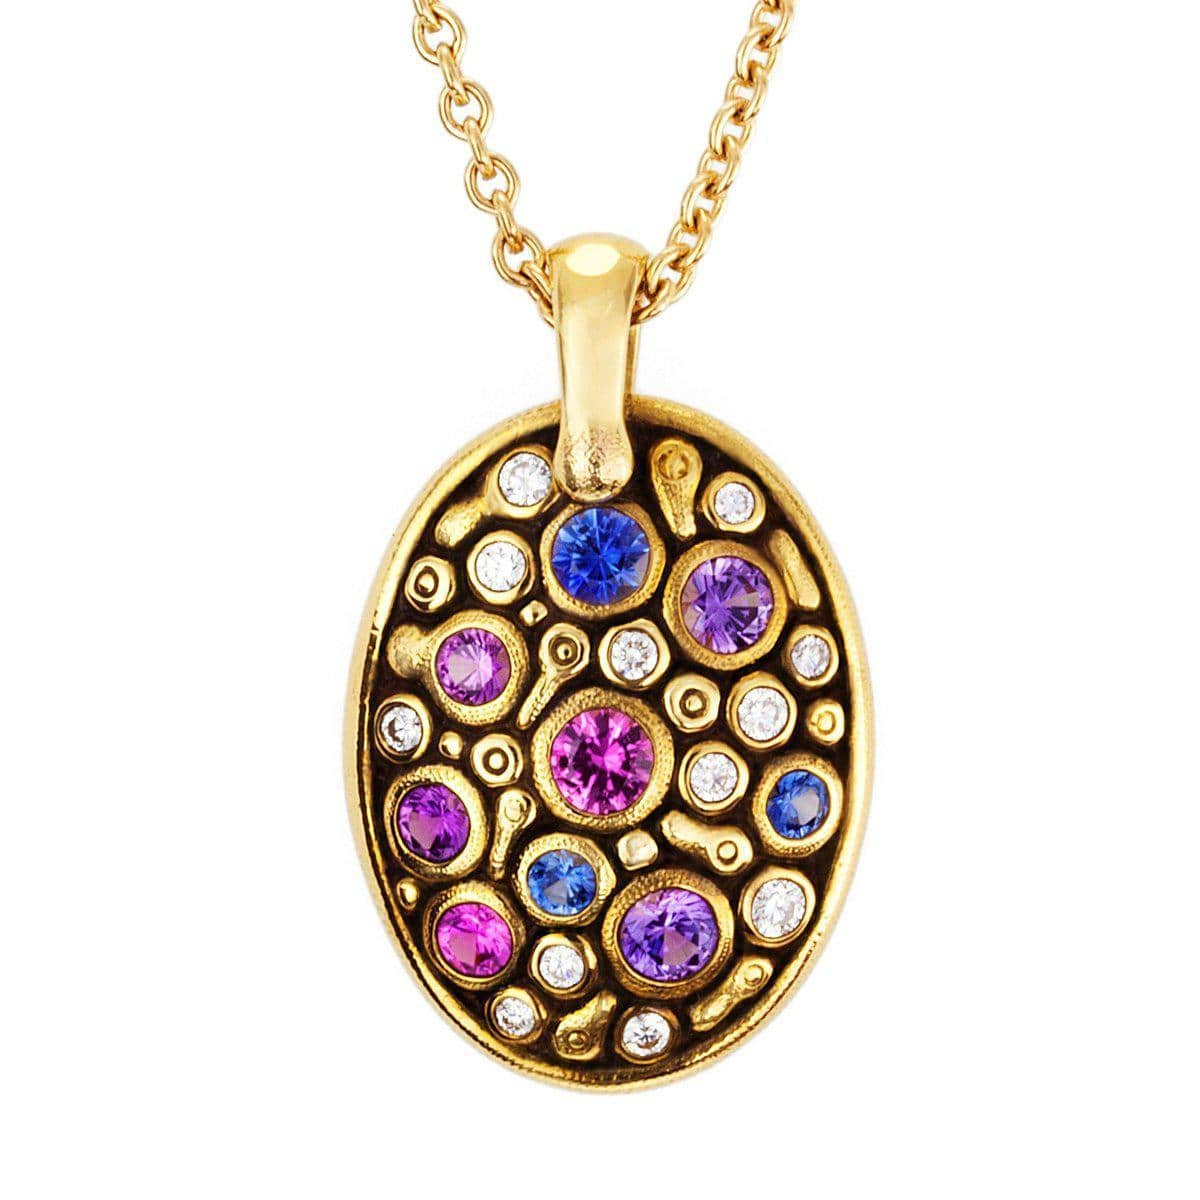 18K Constellation Blue Pink Mix Sapphire & Diamond Pendant - M-64S-Alex Sepkus-Renee Taylor Gallery